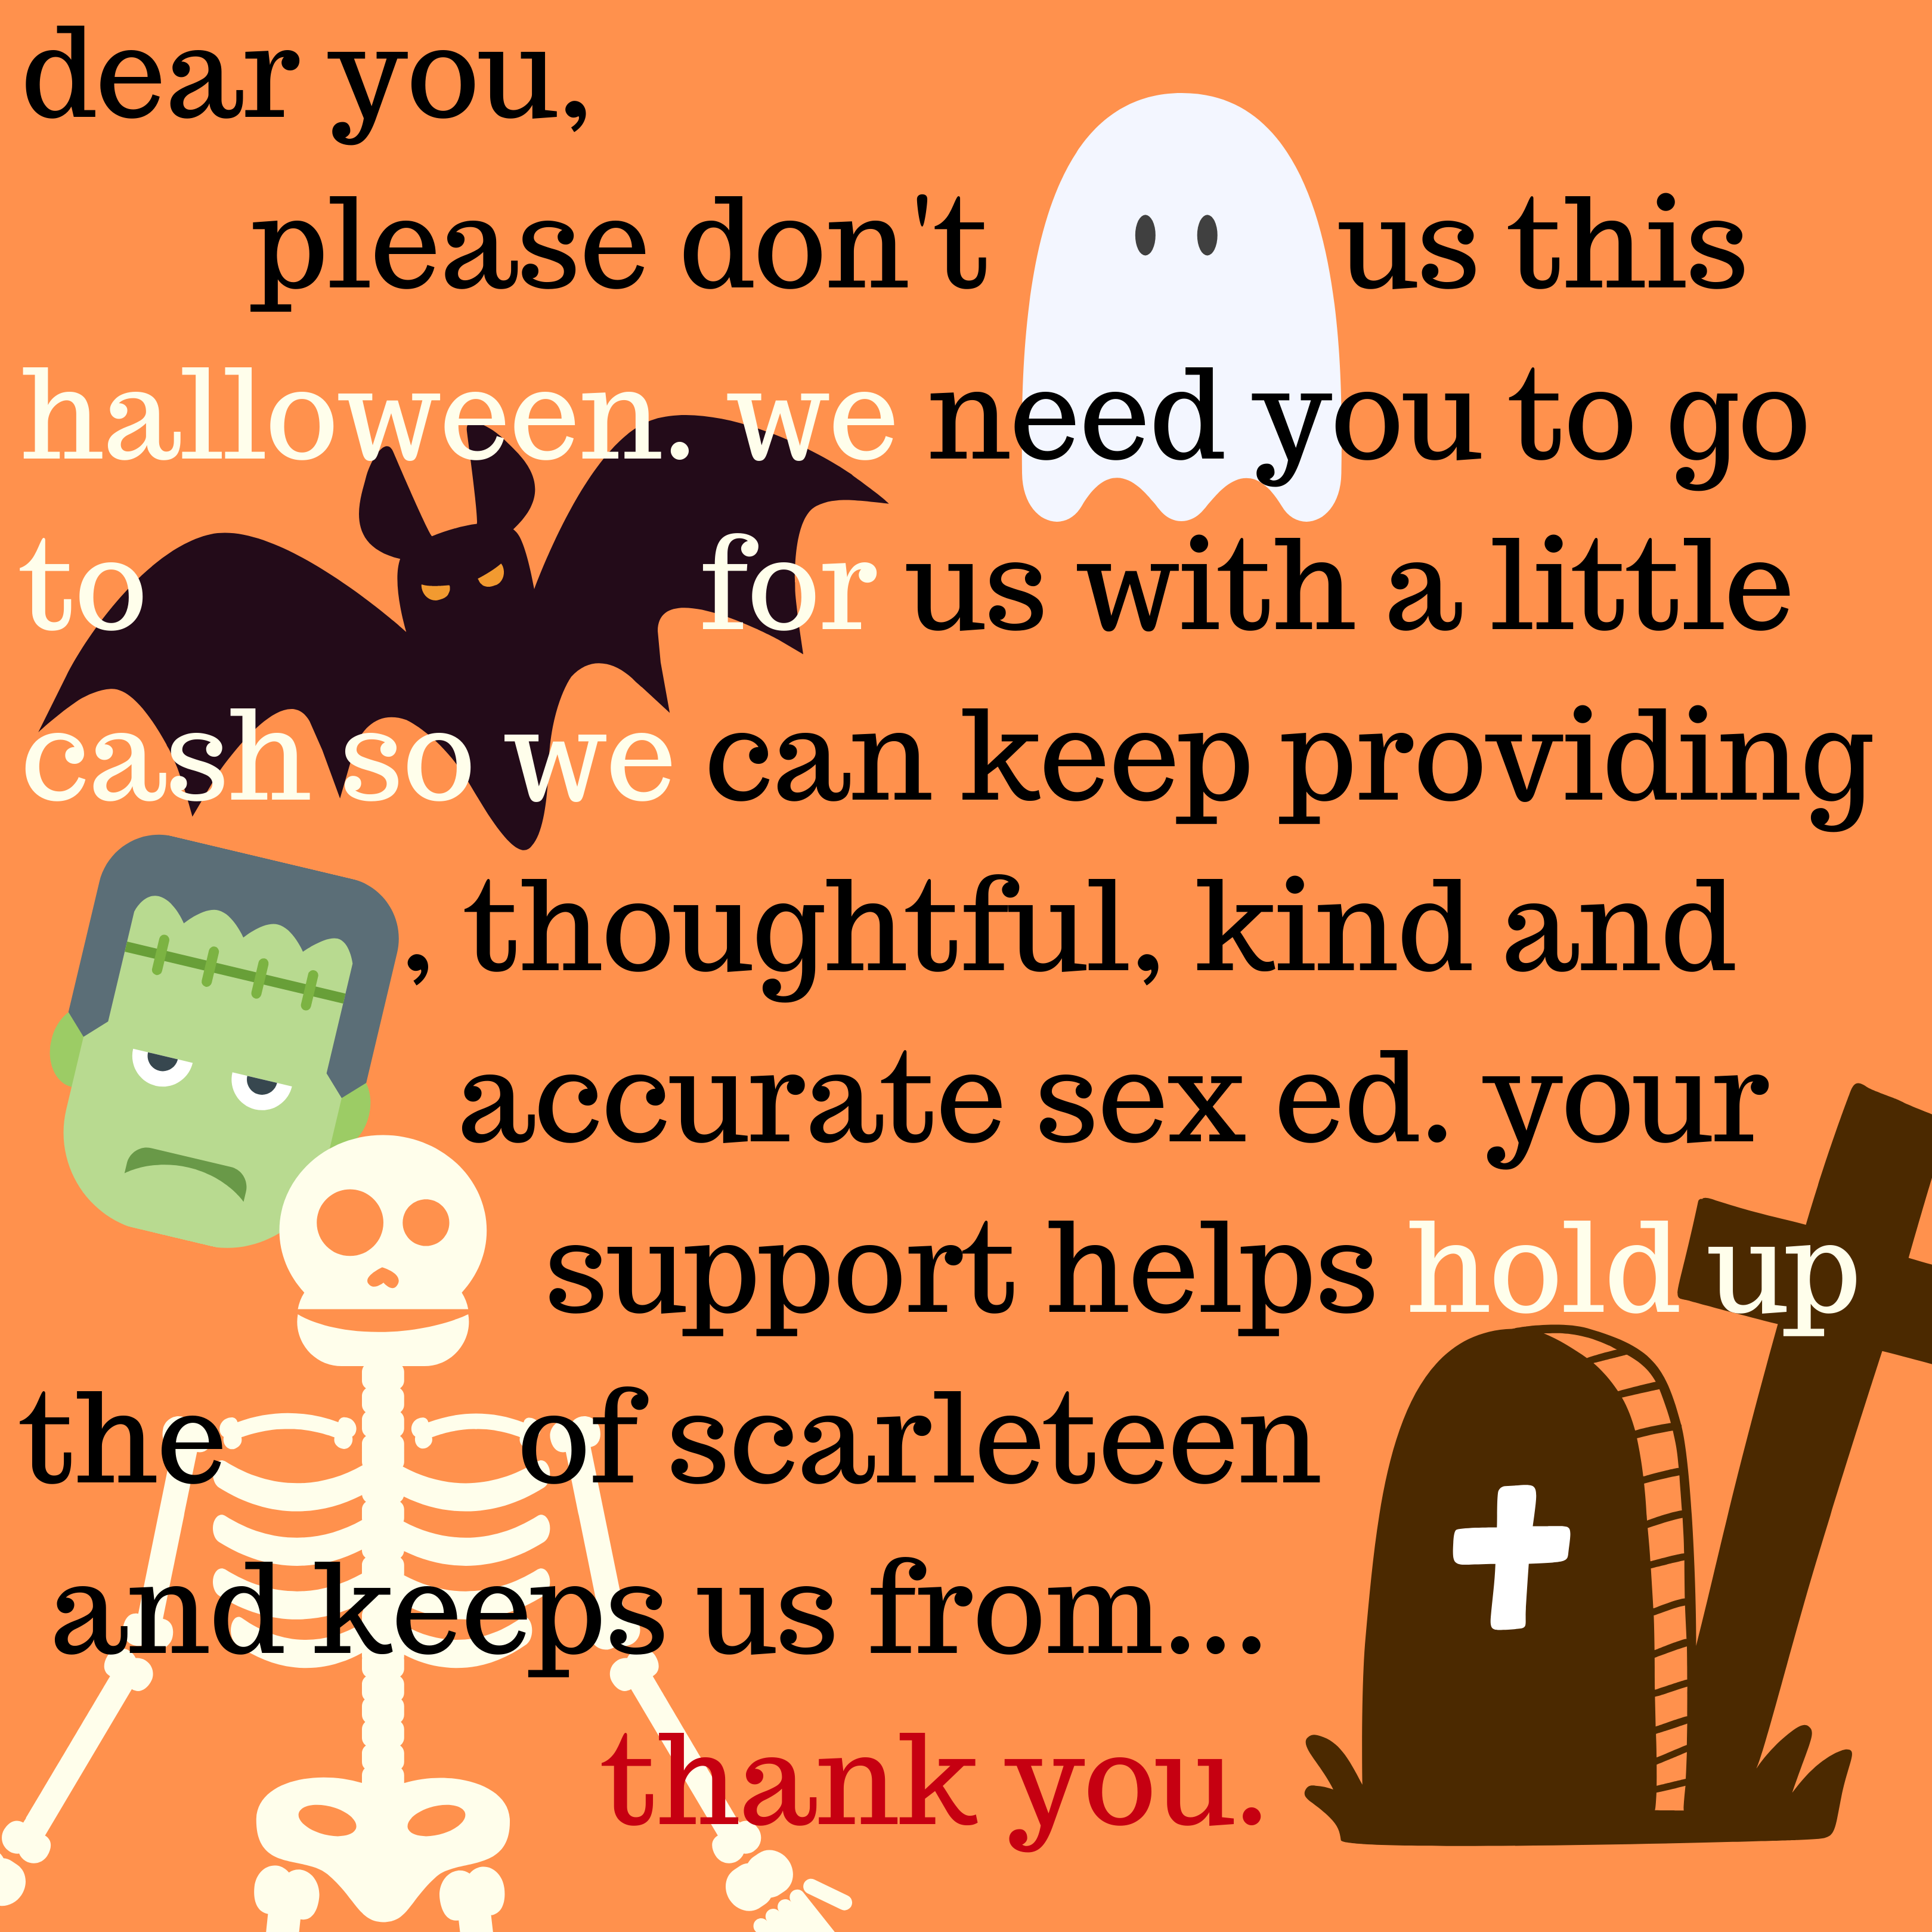 Puzzle text with graphics that read: Dear you, please don't ghost us this Halloween. We ned you to go to bat for us so we can keep providing franks, thoughtful sex ed. Your support helps hold up the bones of Scarleteen and helps keep us from the grave.  Thank you.